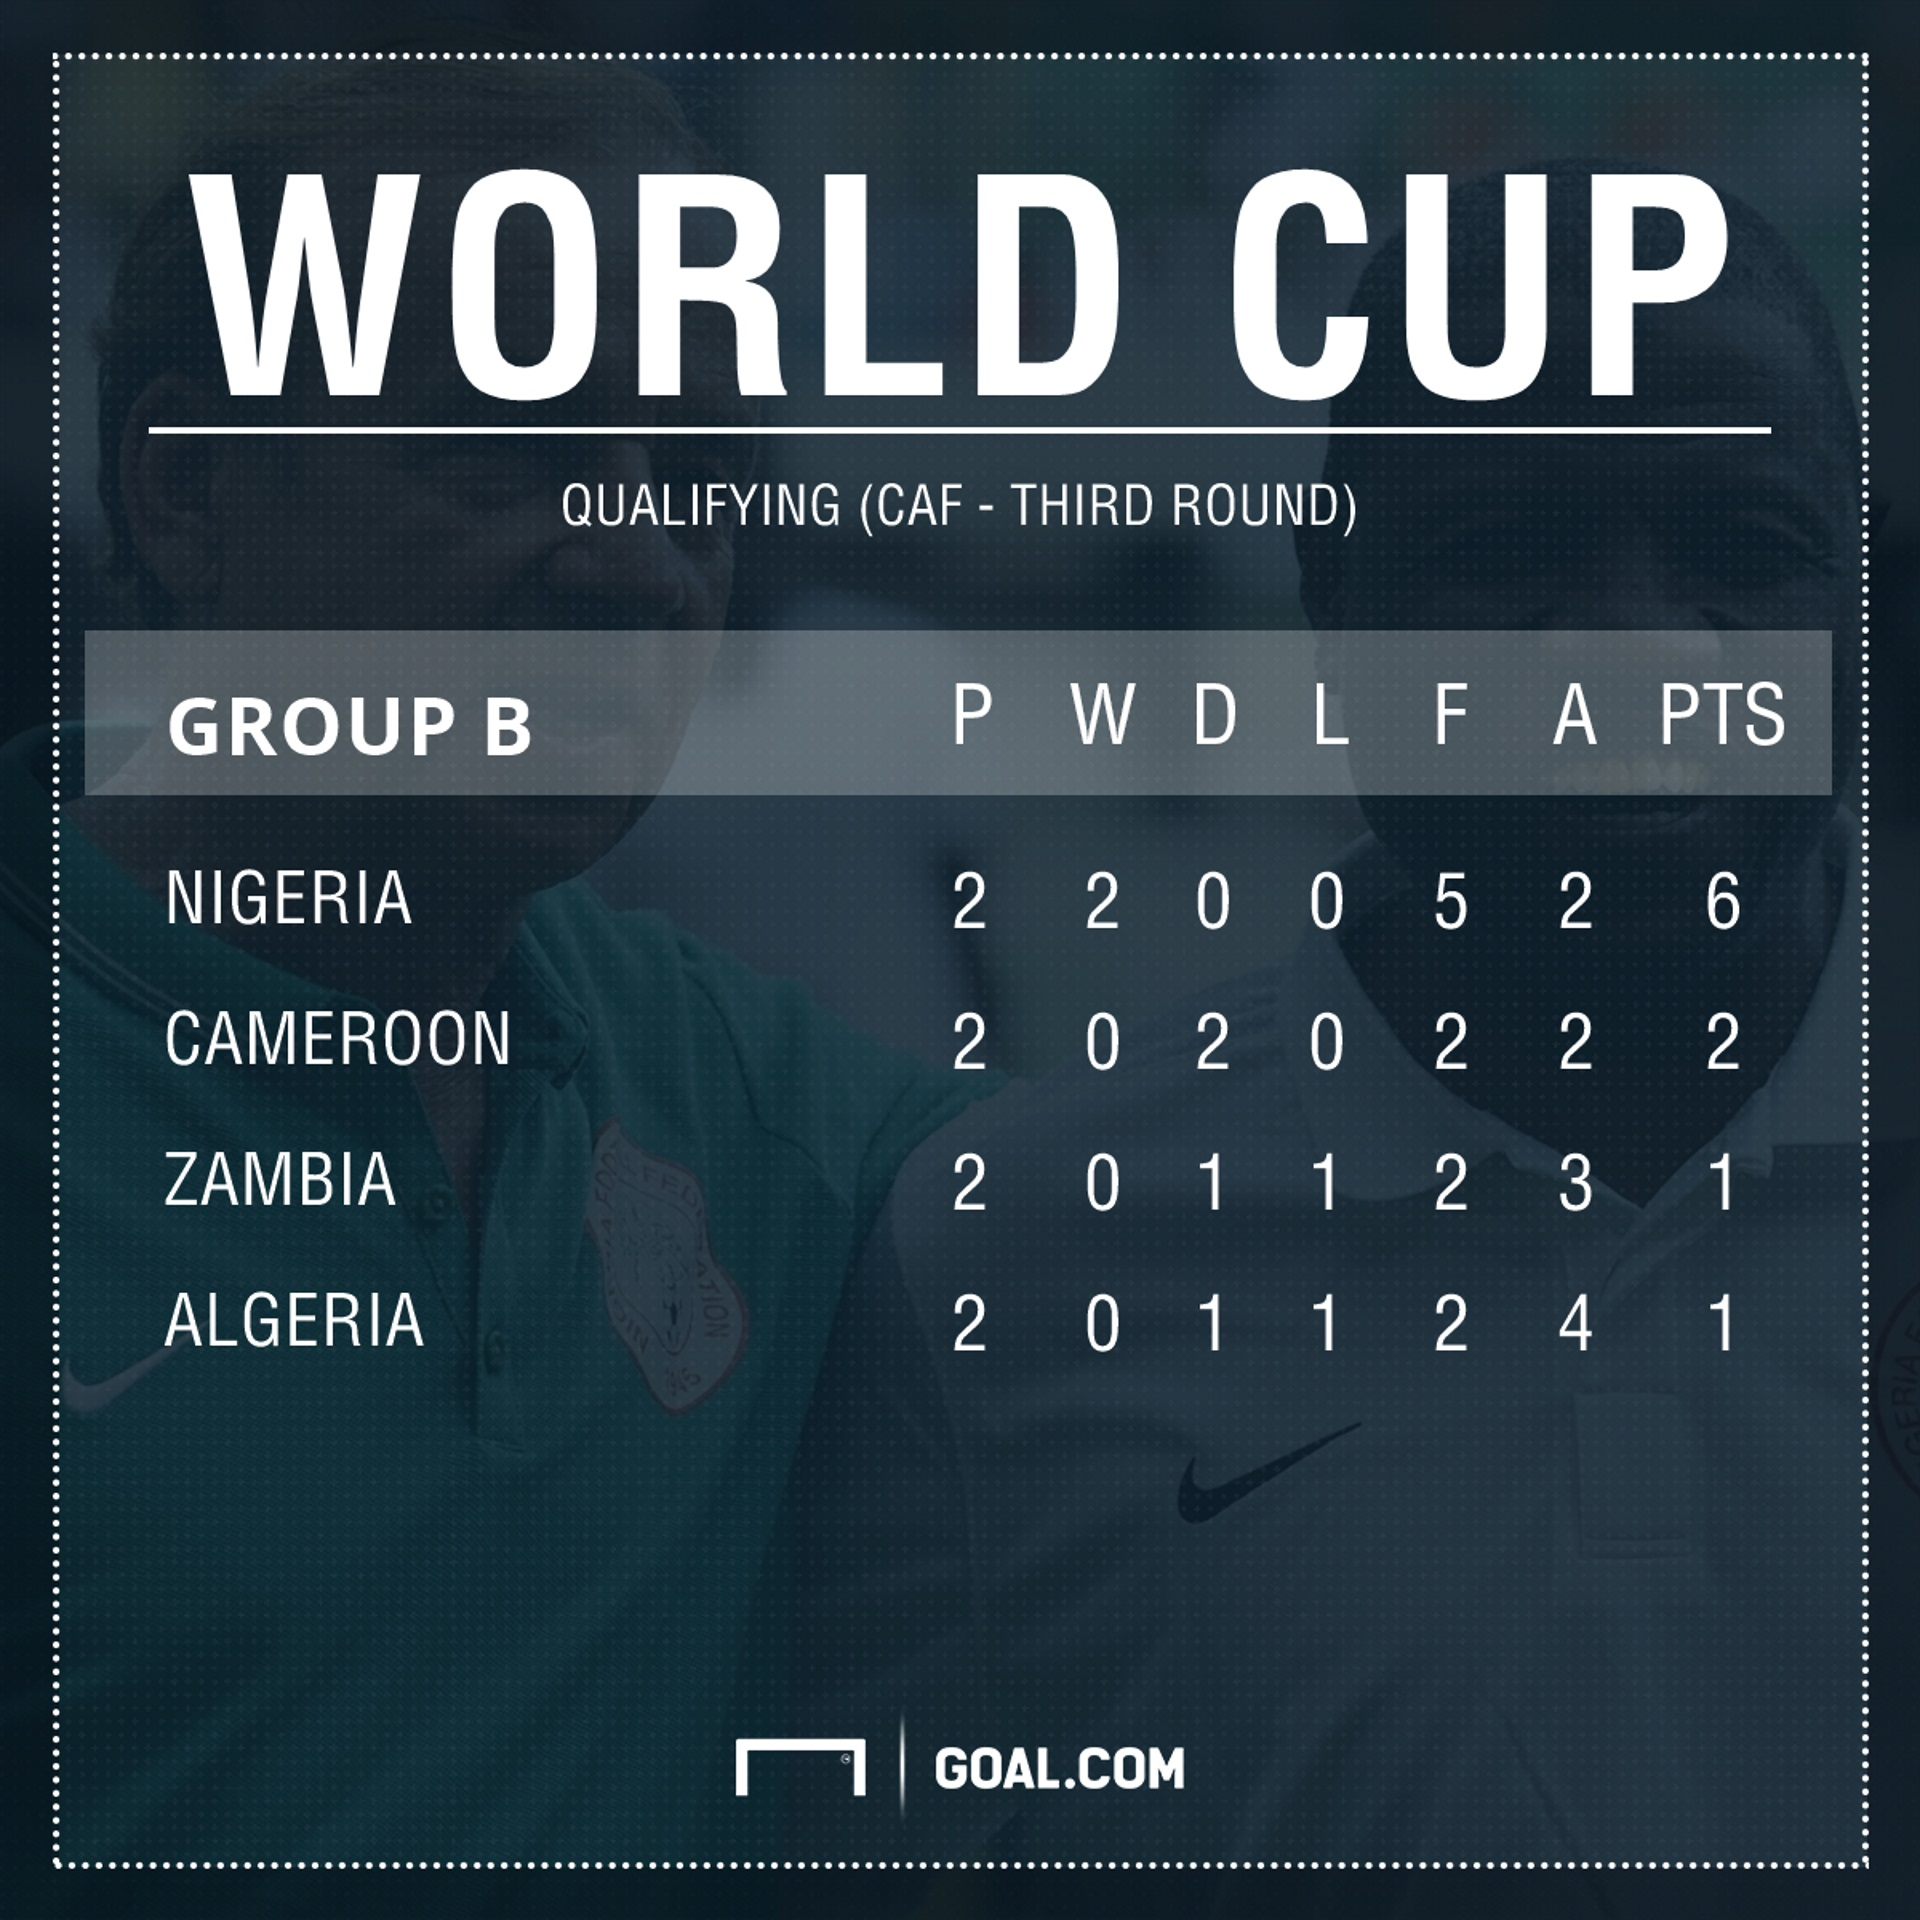 World Cup qualifying Caf Group B